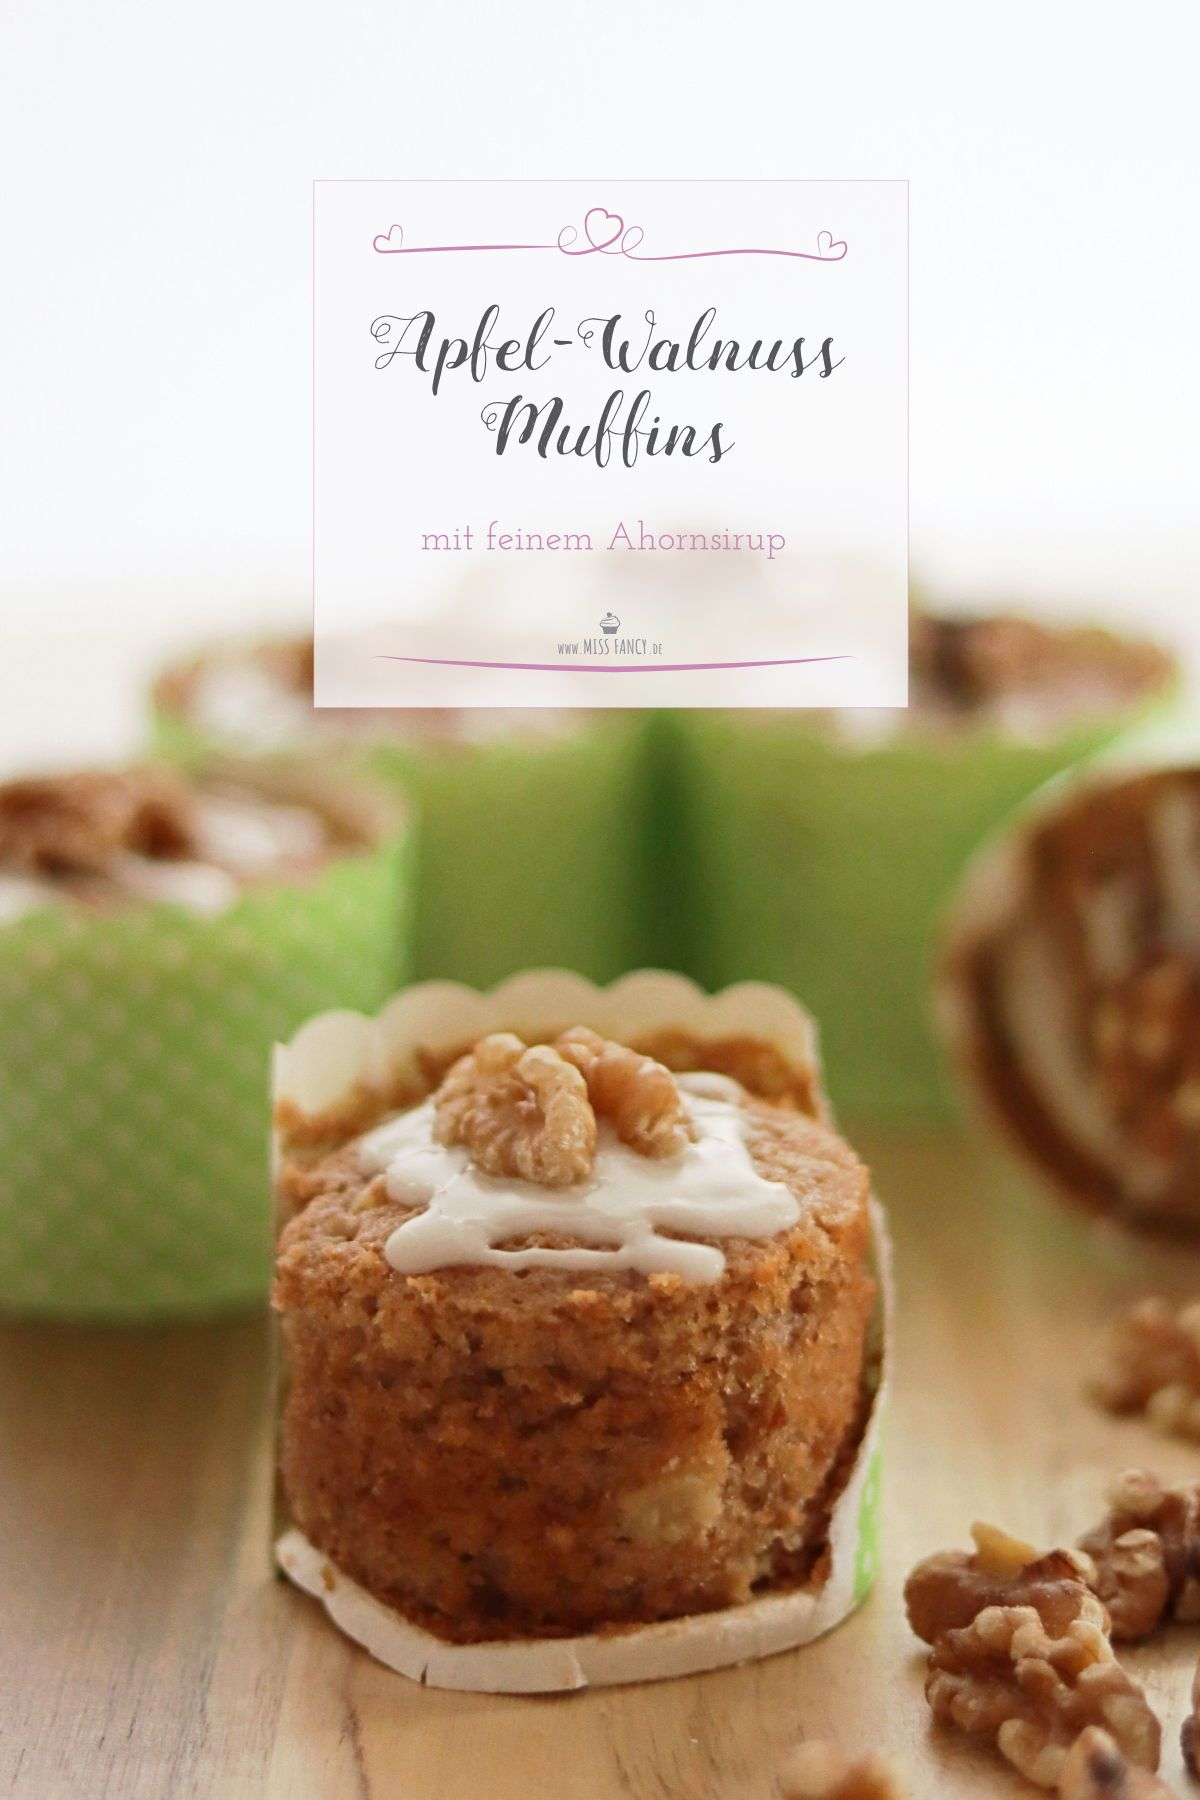 Apfel-Walnuss-Muffins mit Ahornsirup #hawaiianfoodrecipes